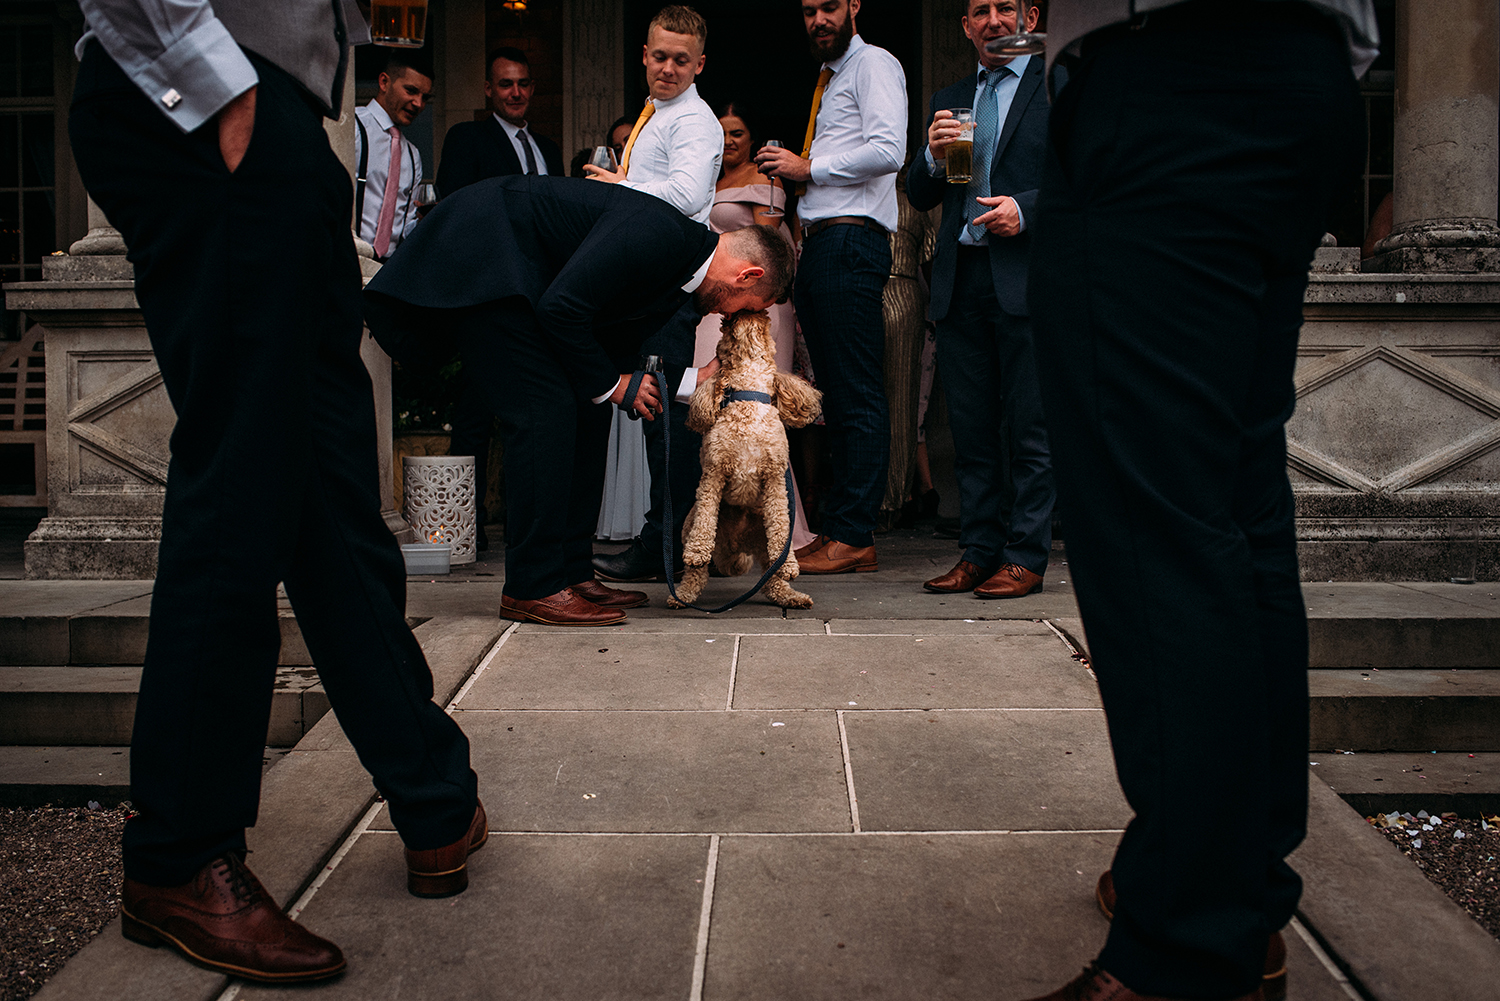 groomsman being licked in the face by a dog